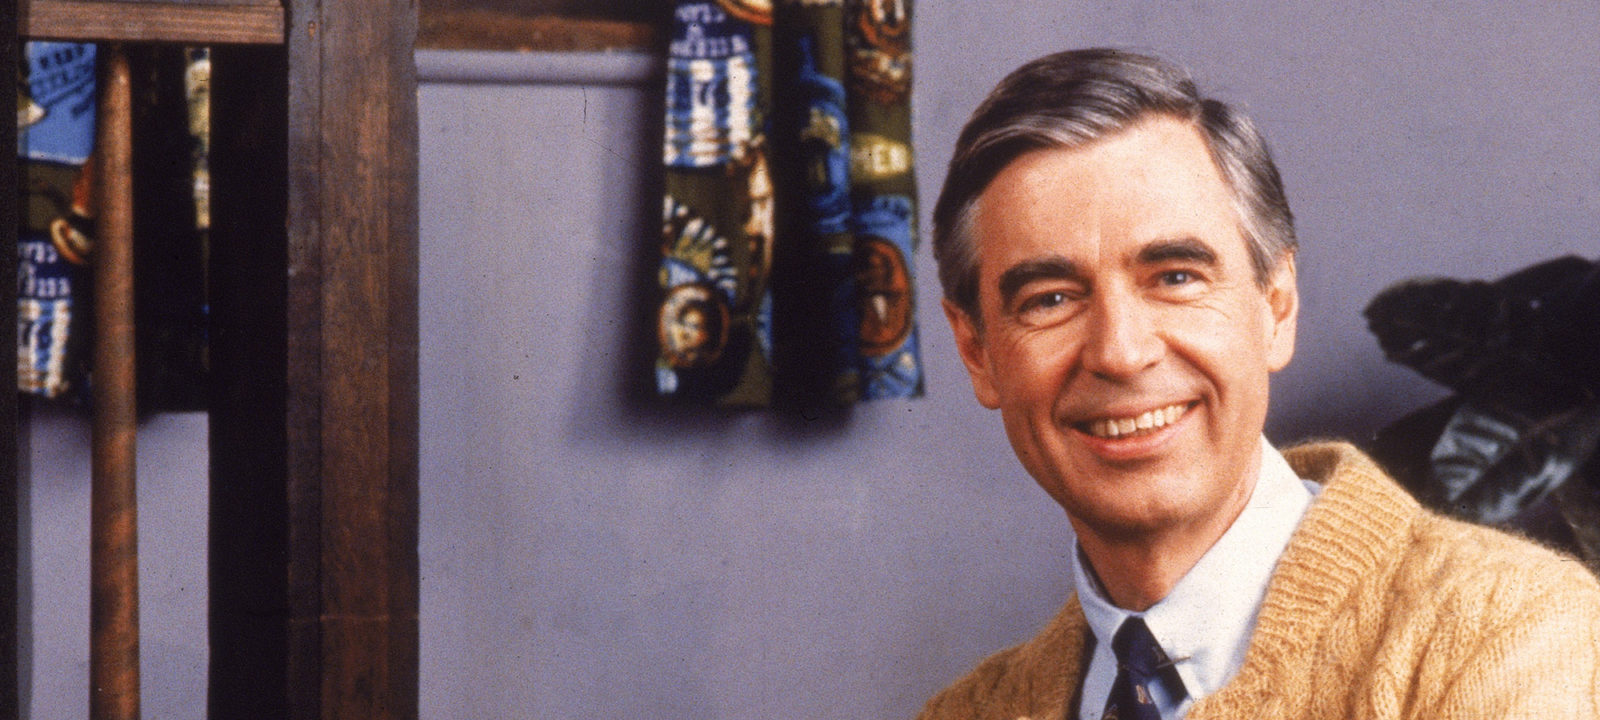 Portrait Of Mister Rogers